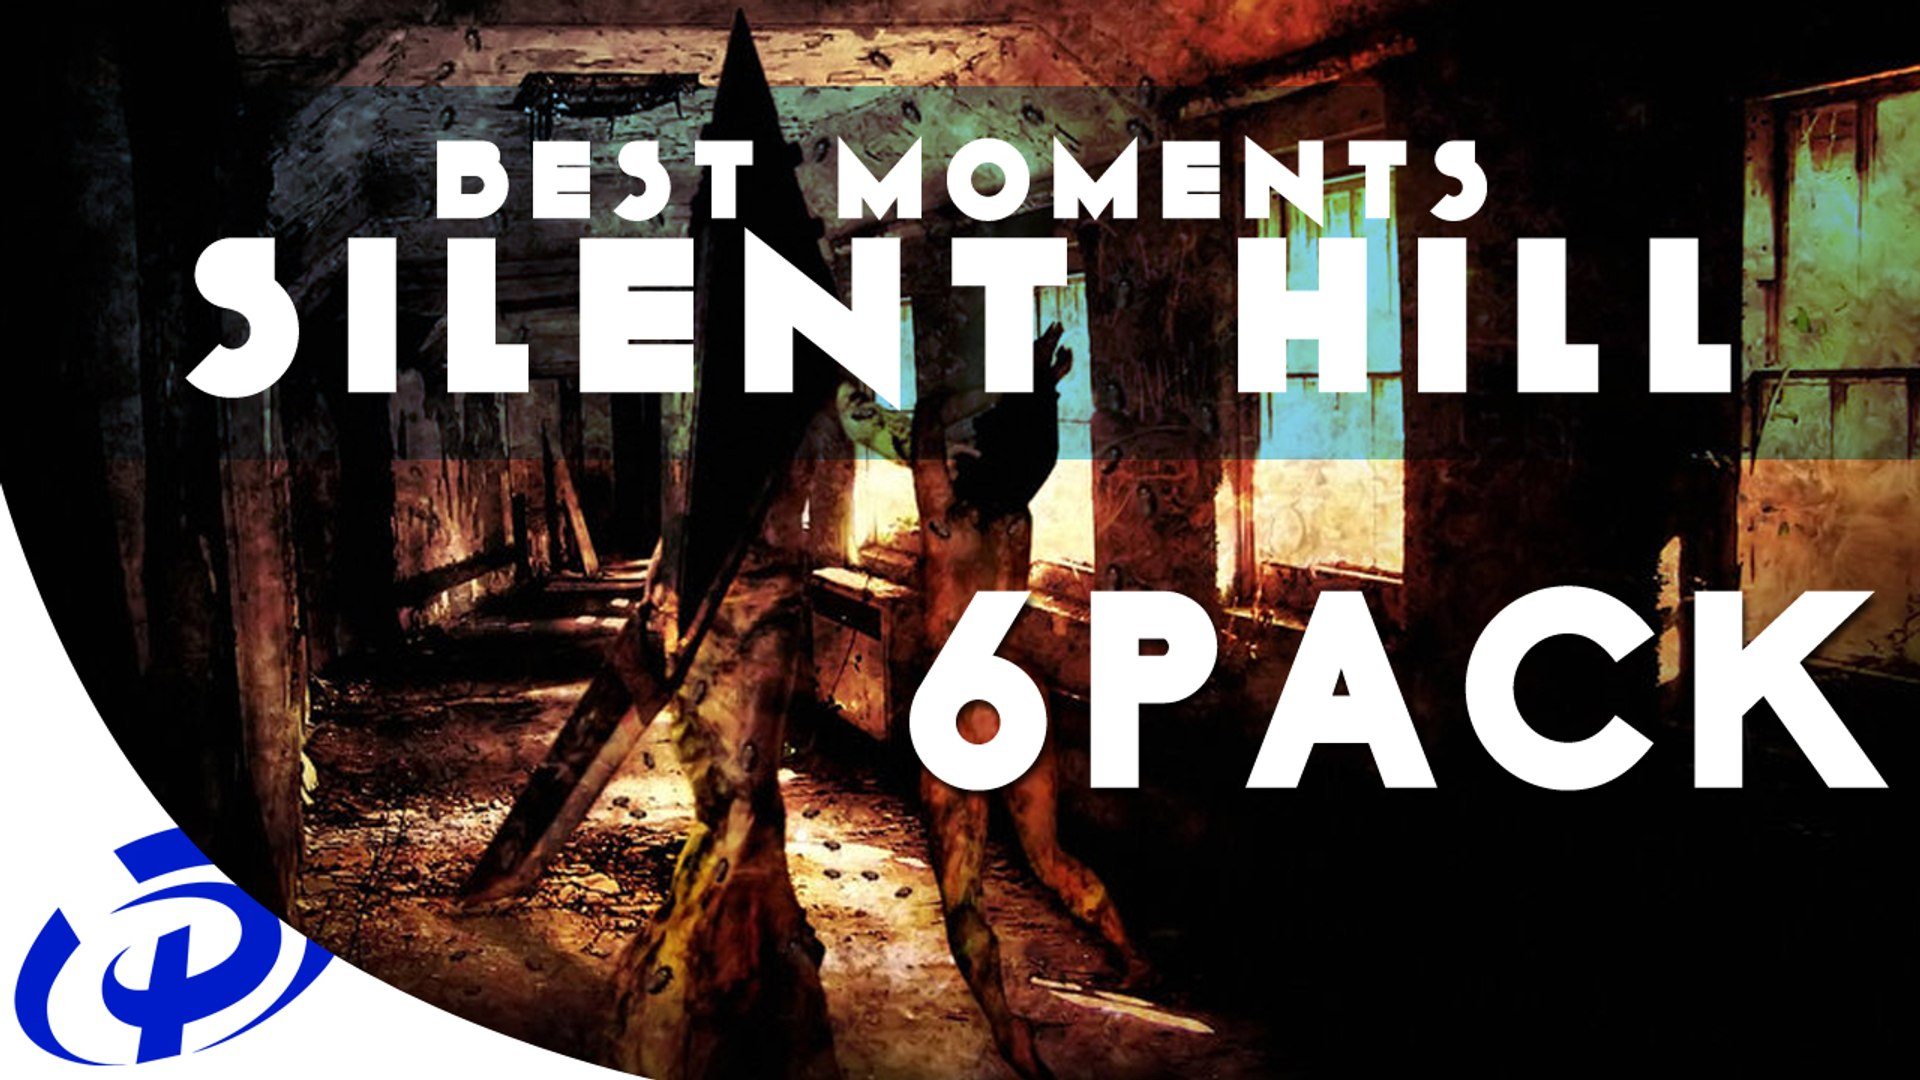 Vlog - SixPack - Best Moments of Silent Hill